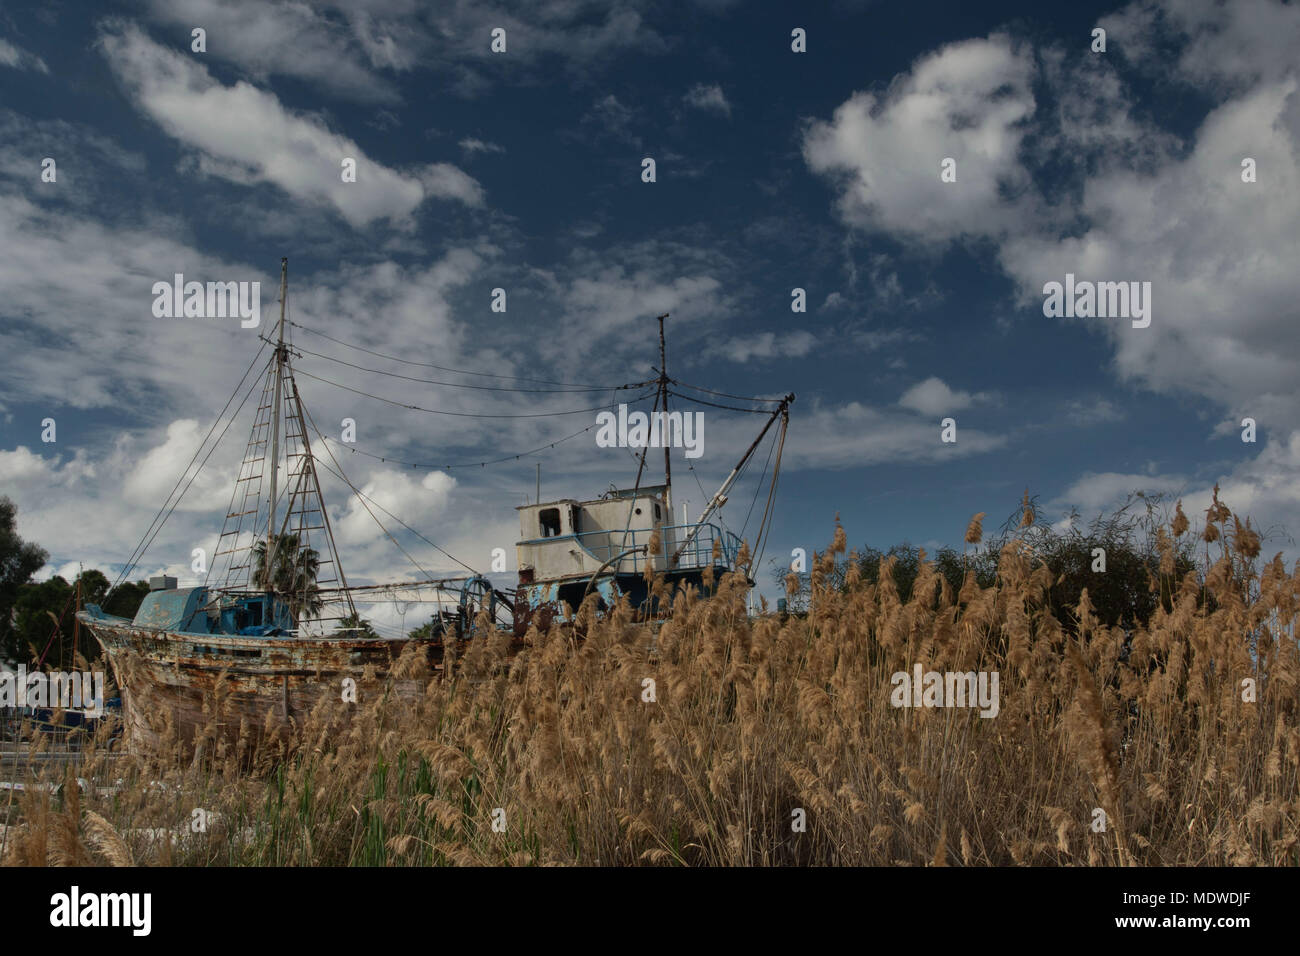 Dramatic sky over field of reeds and wooden ship, Polis, Cyprus Stock Photo